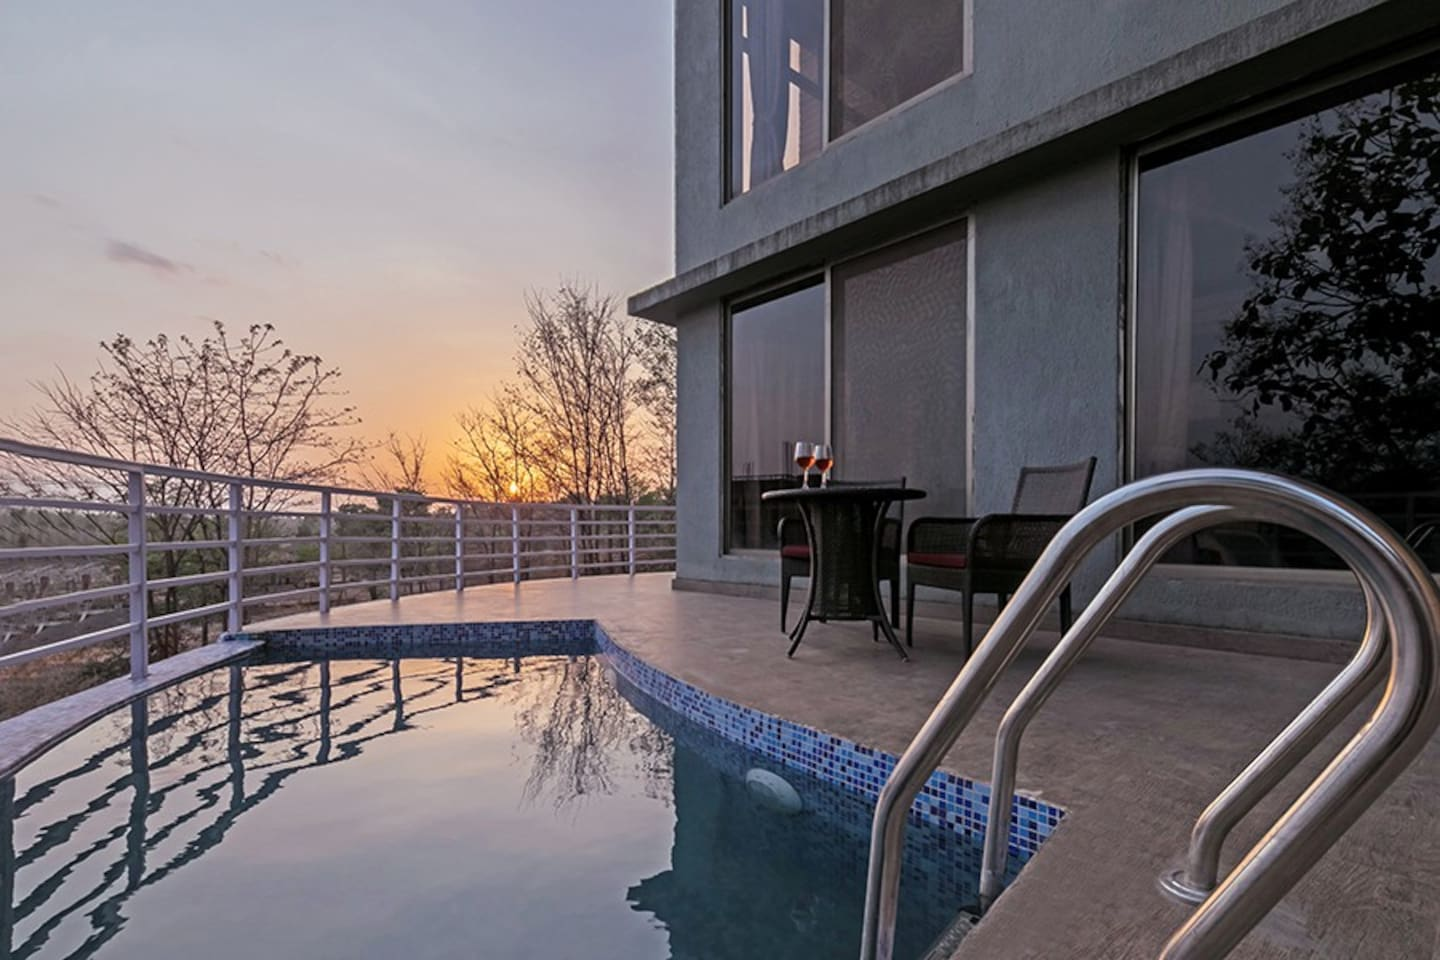 Terrace with a pool & Sunset view